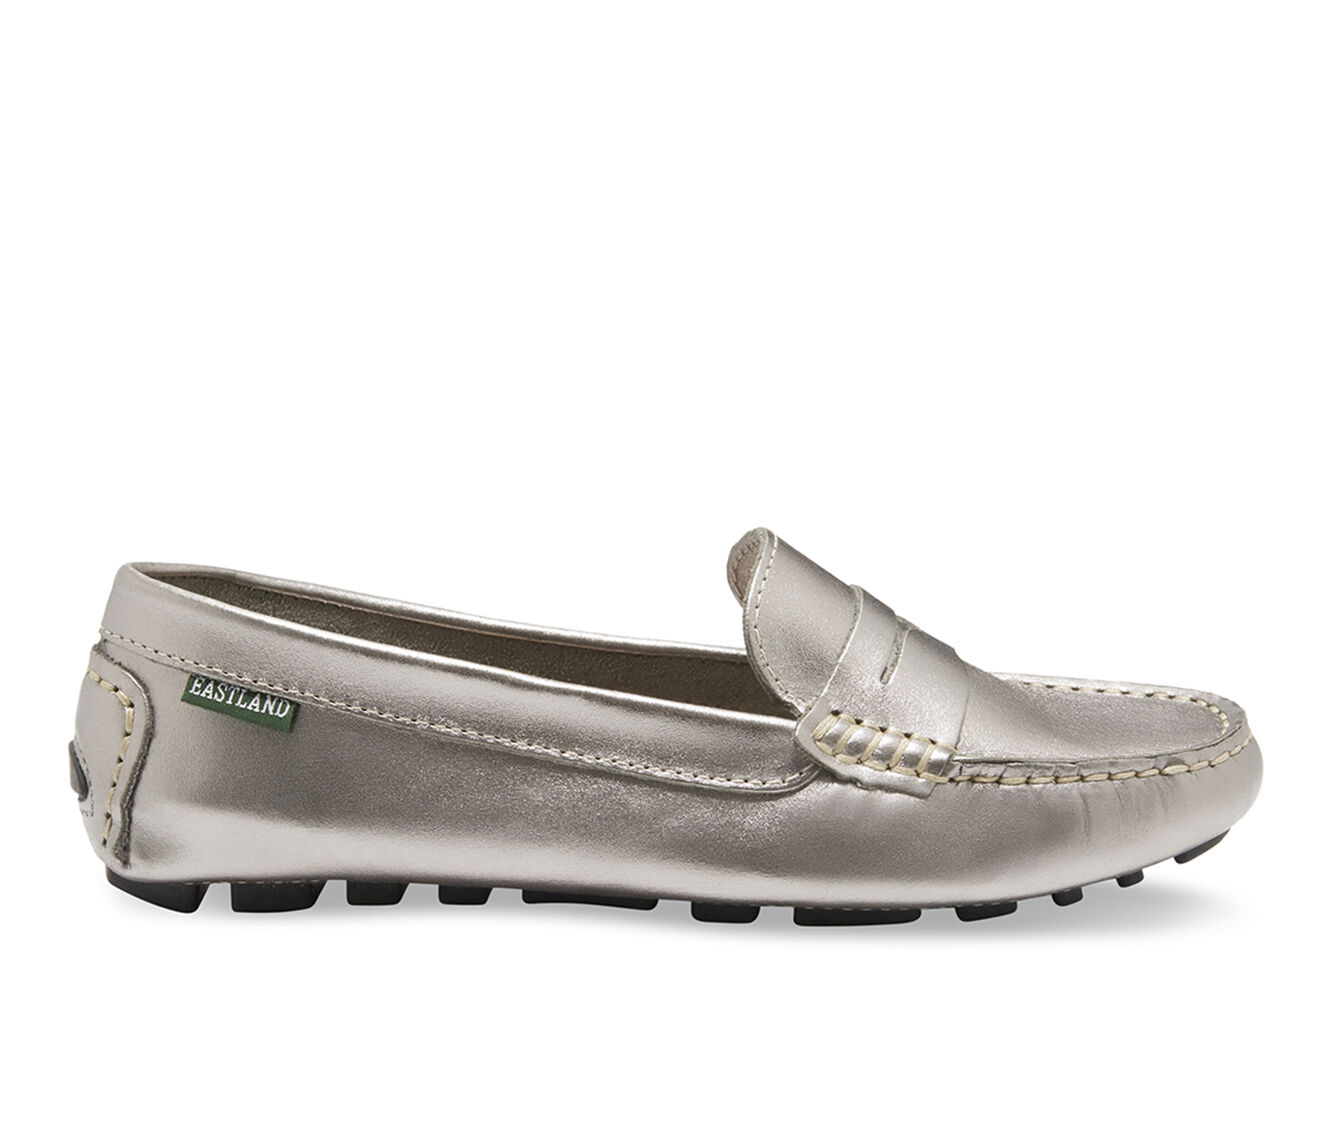 Women's Eastland Patricia Penny Loafers Silver